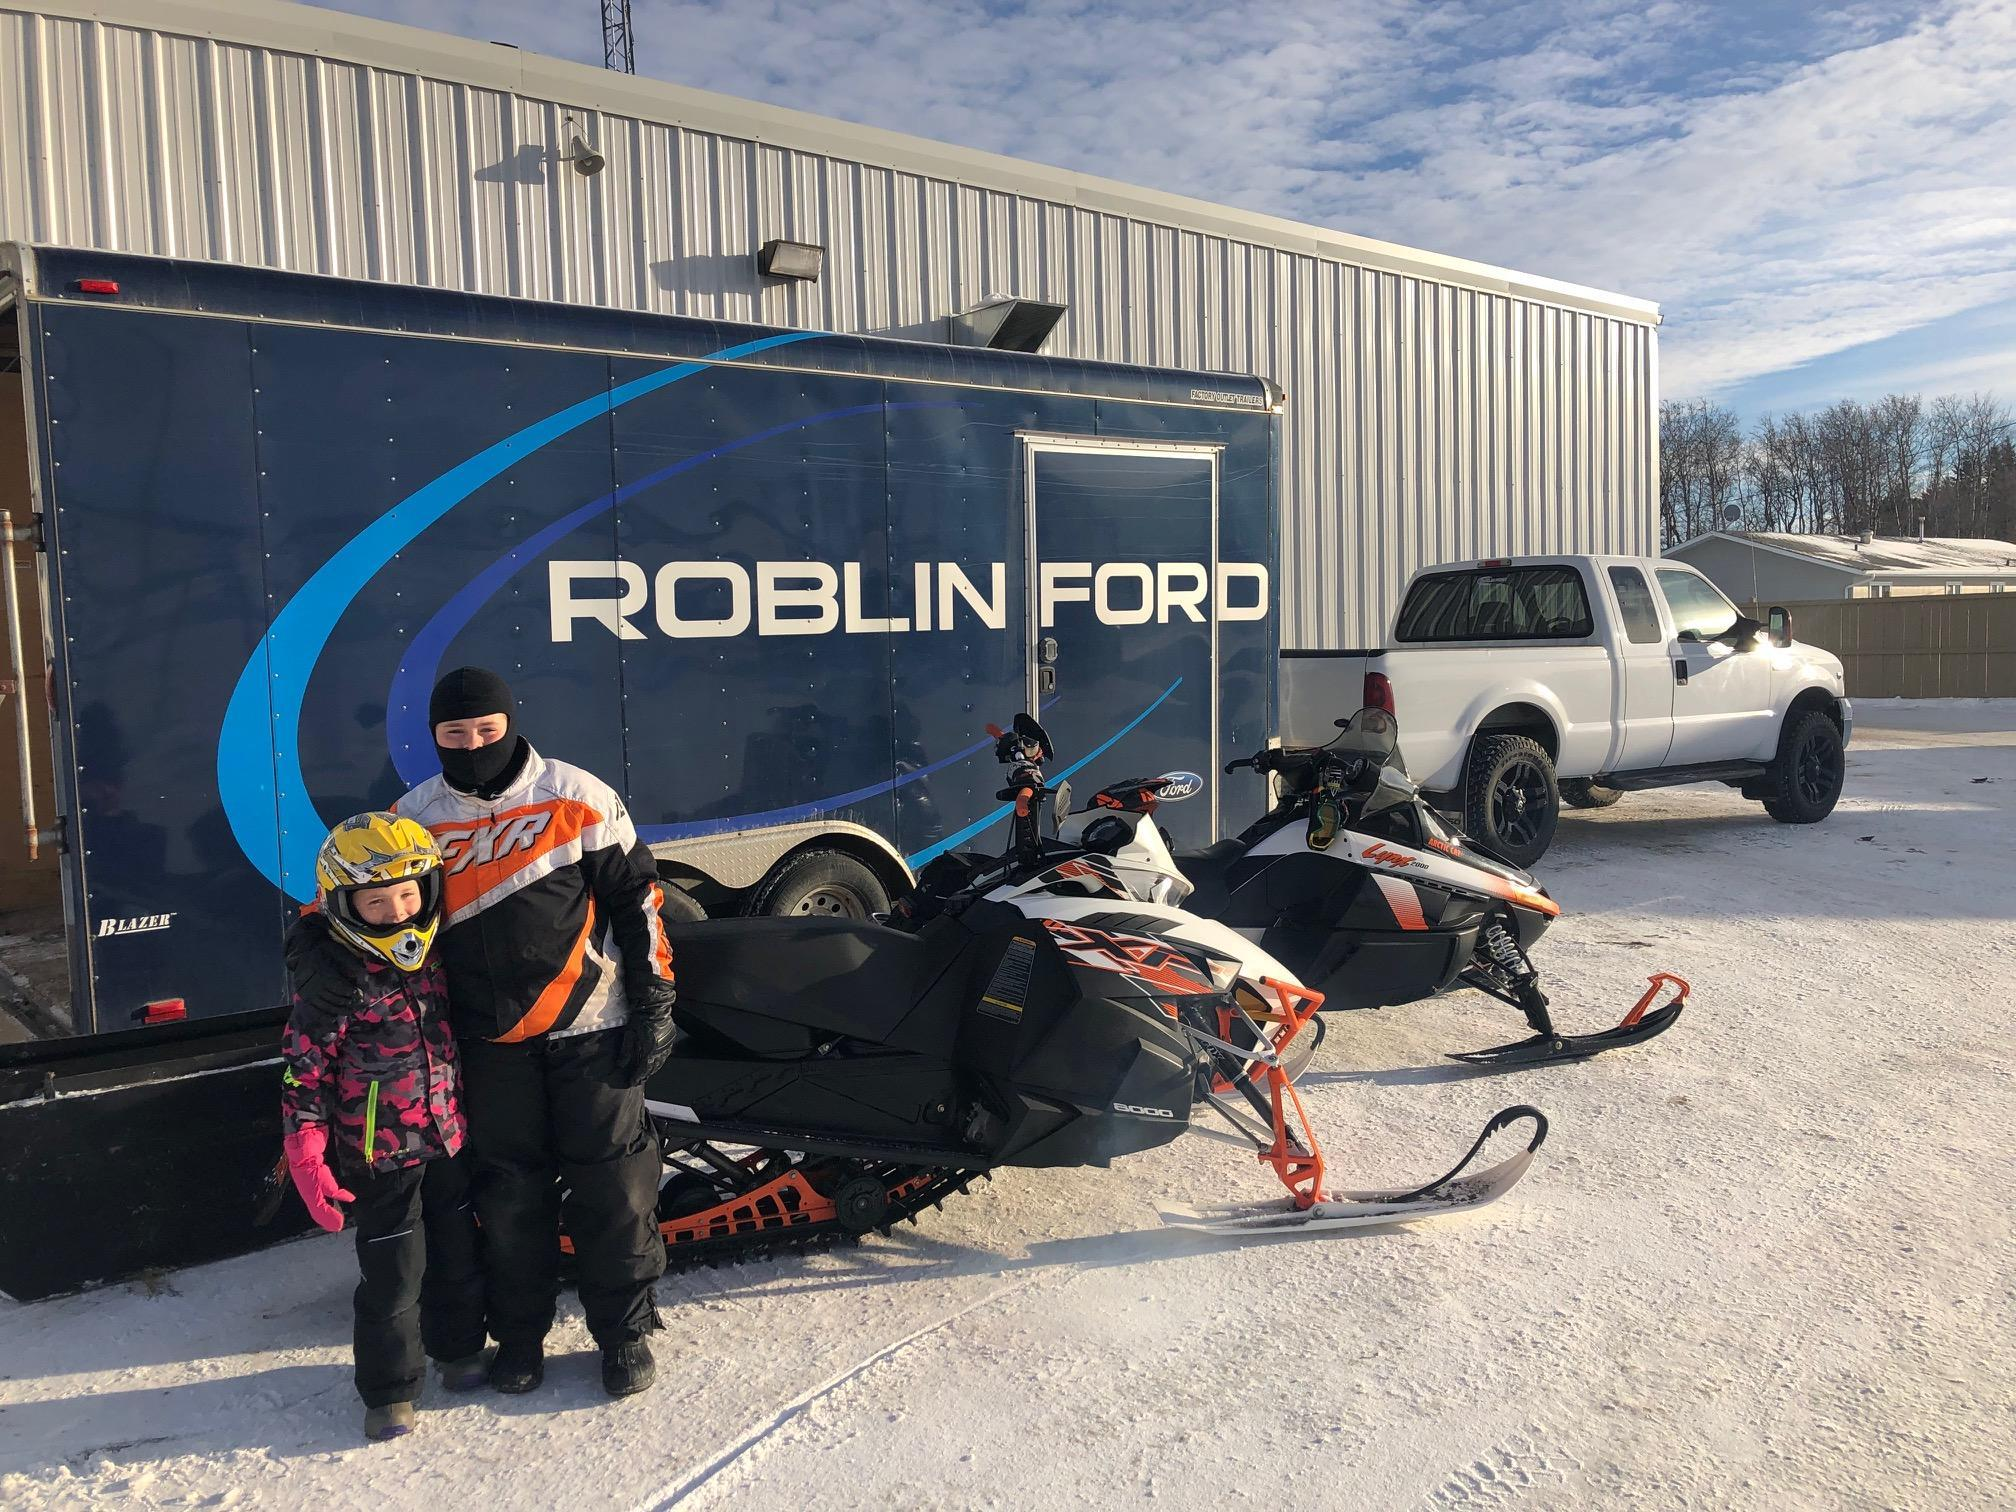 Roblin Ford